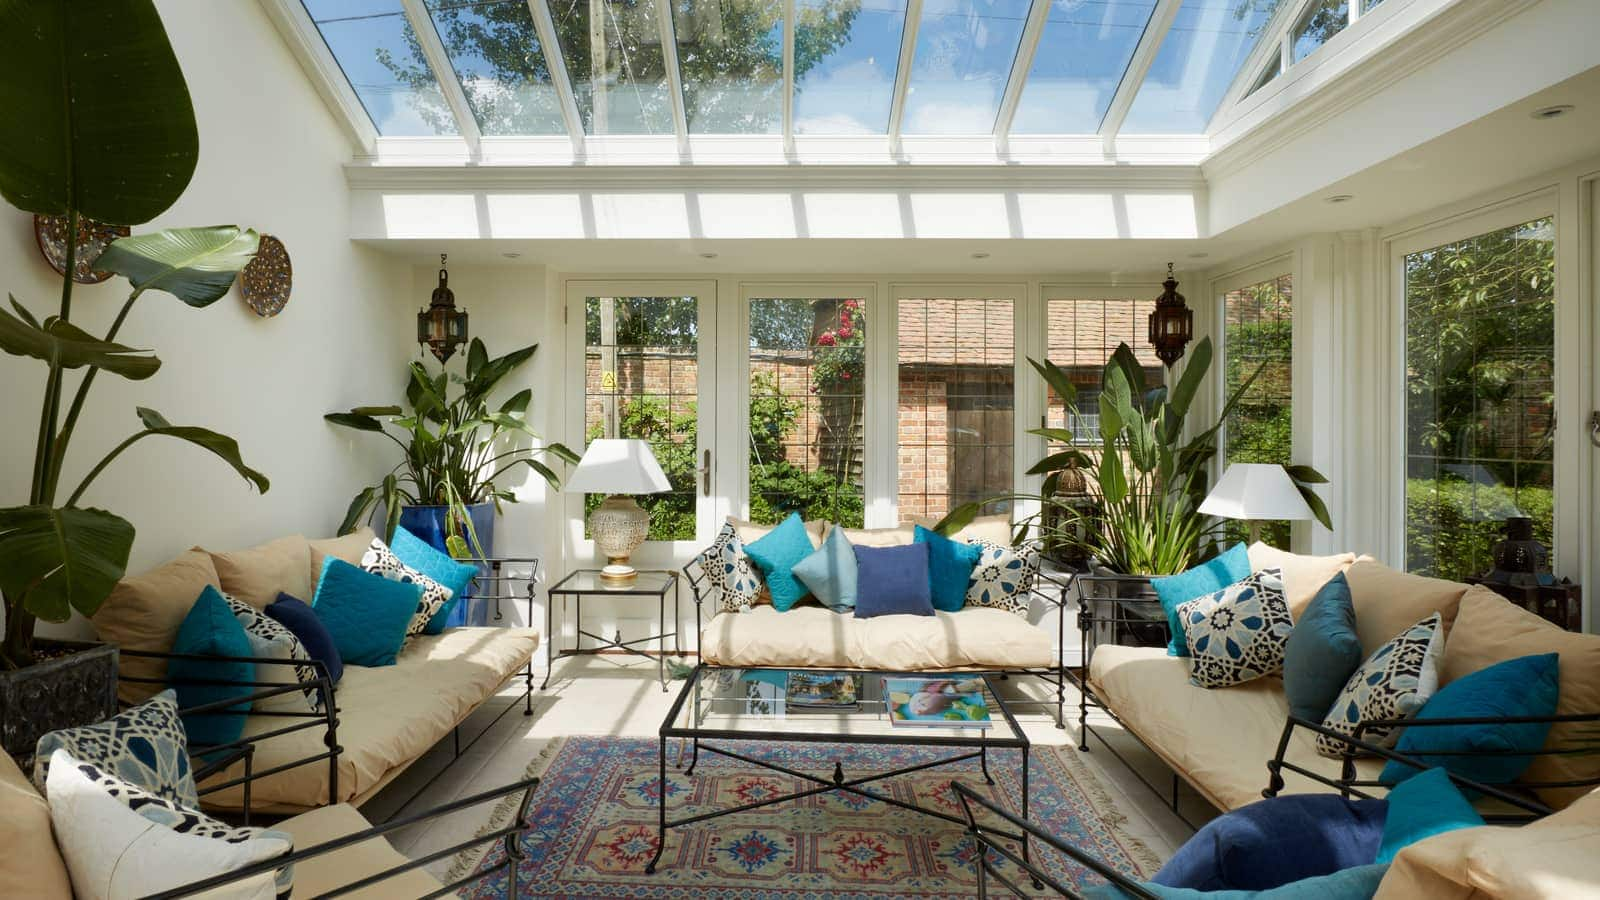 Garden room sitting room, designed with a lead roof and parapet, and twin lanterns